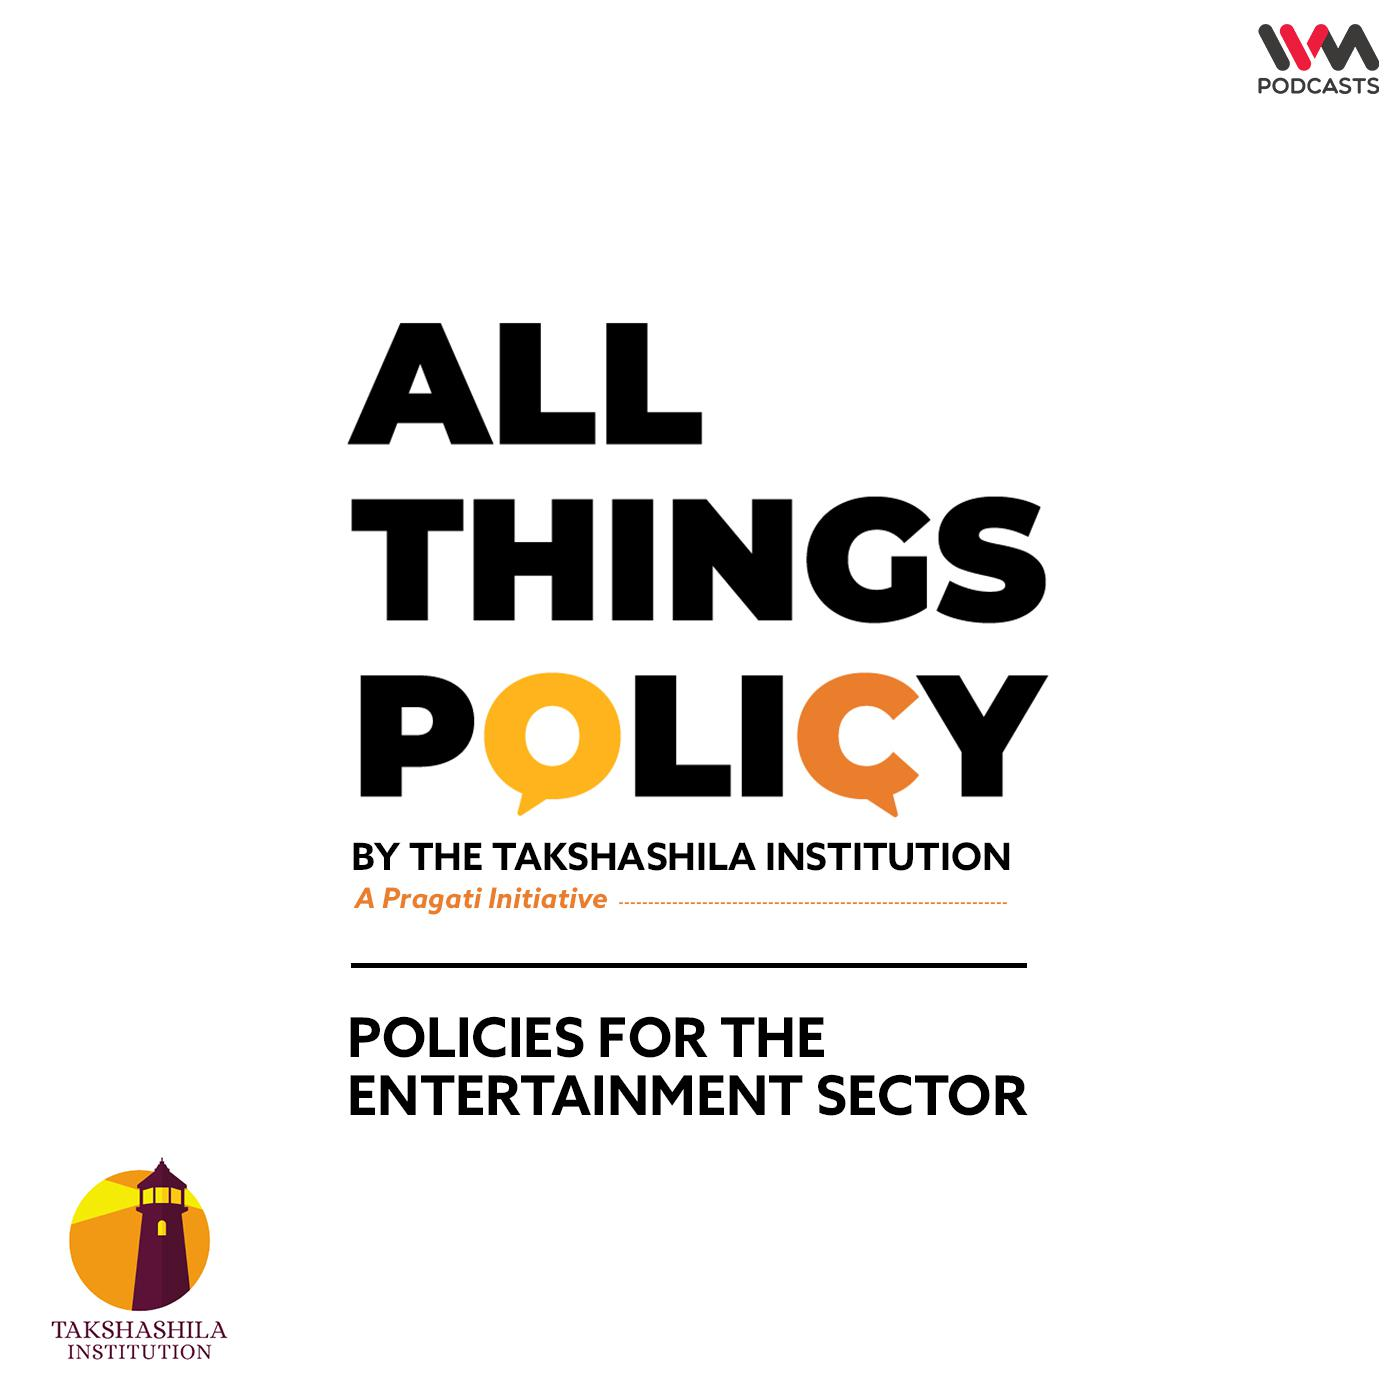 Ep. 609: Policies for the Entertainment Sector